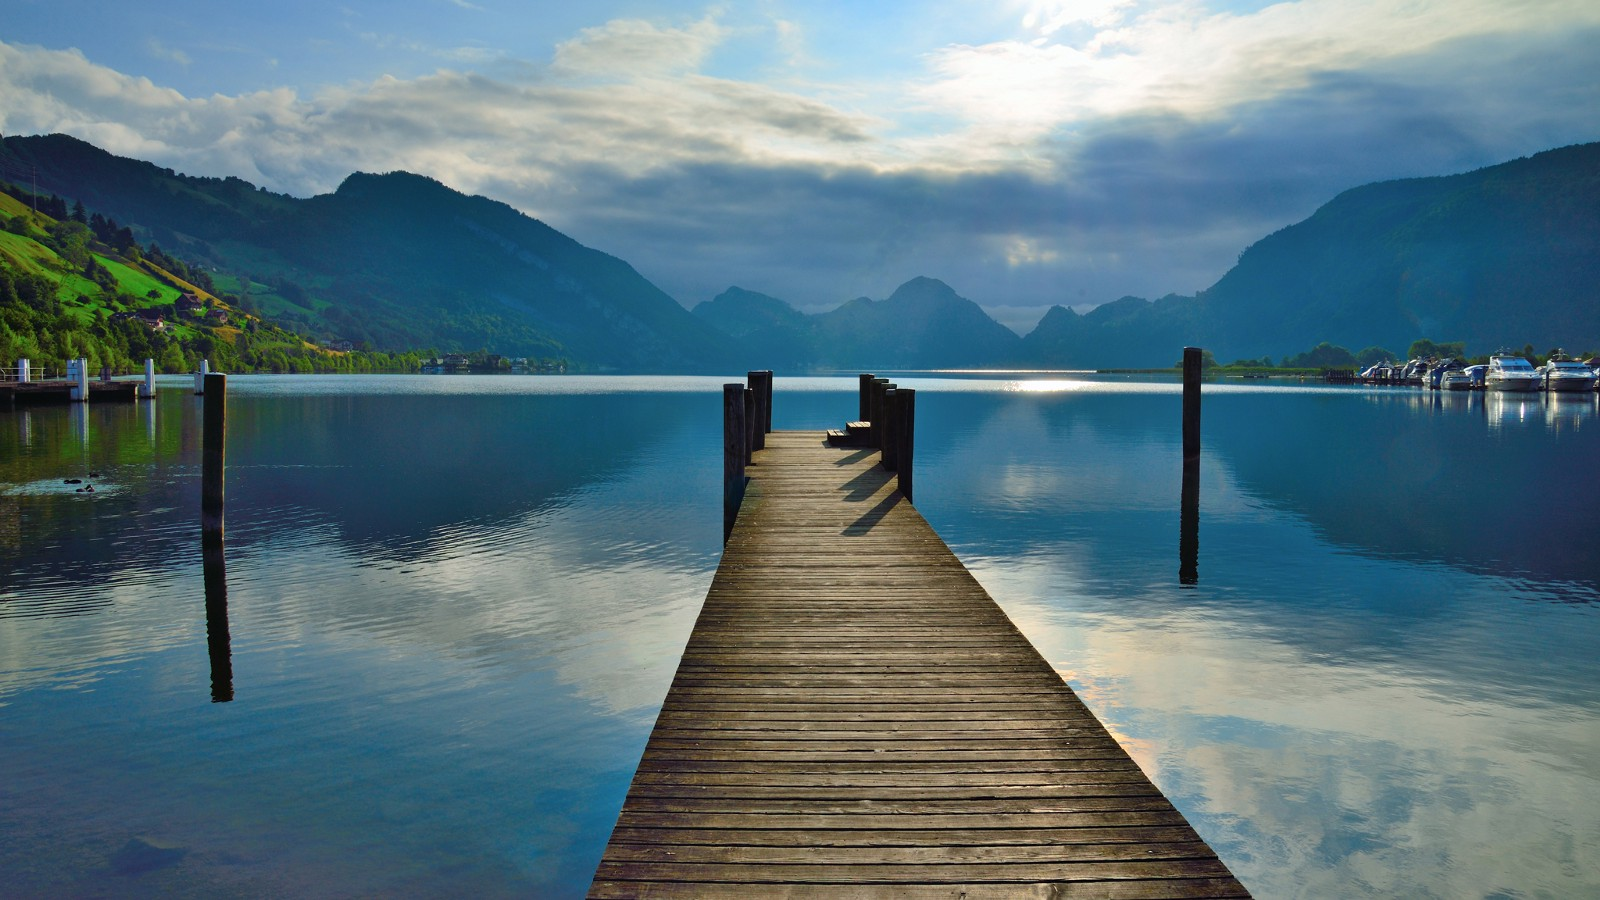 Wooden jetty at Lake of Lucerne, Switzerland